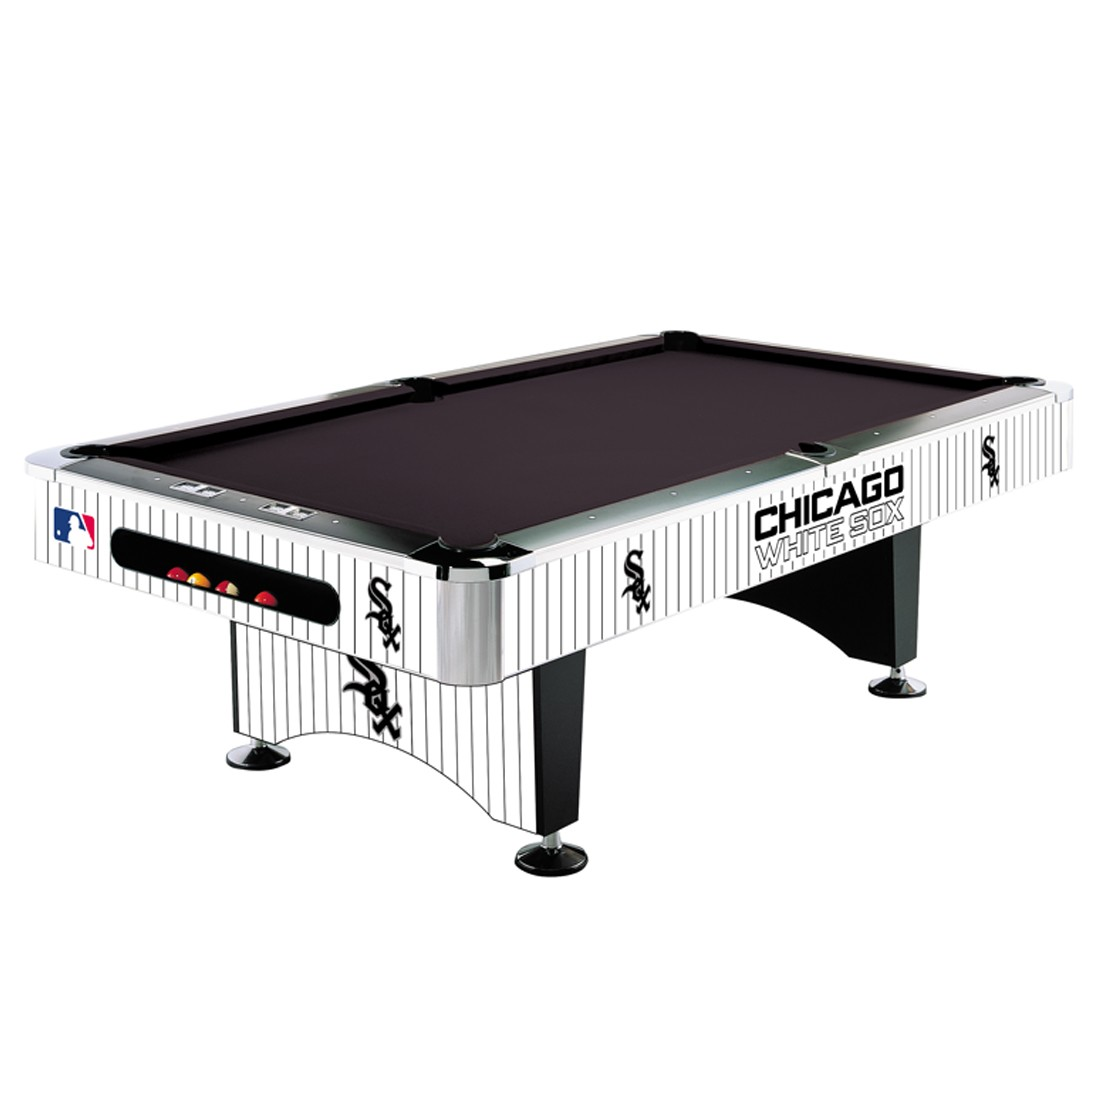 CHICAGO WHITE SOX 8-FT. POOL TABLE